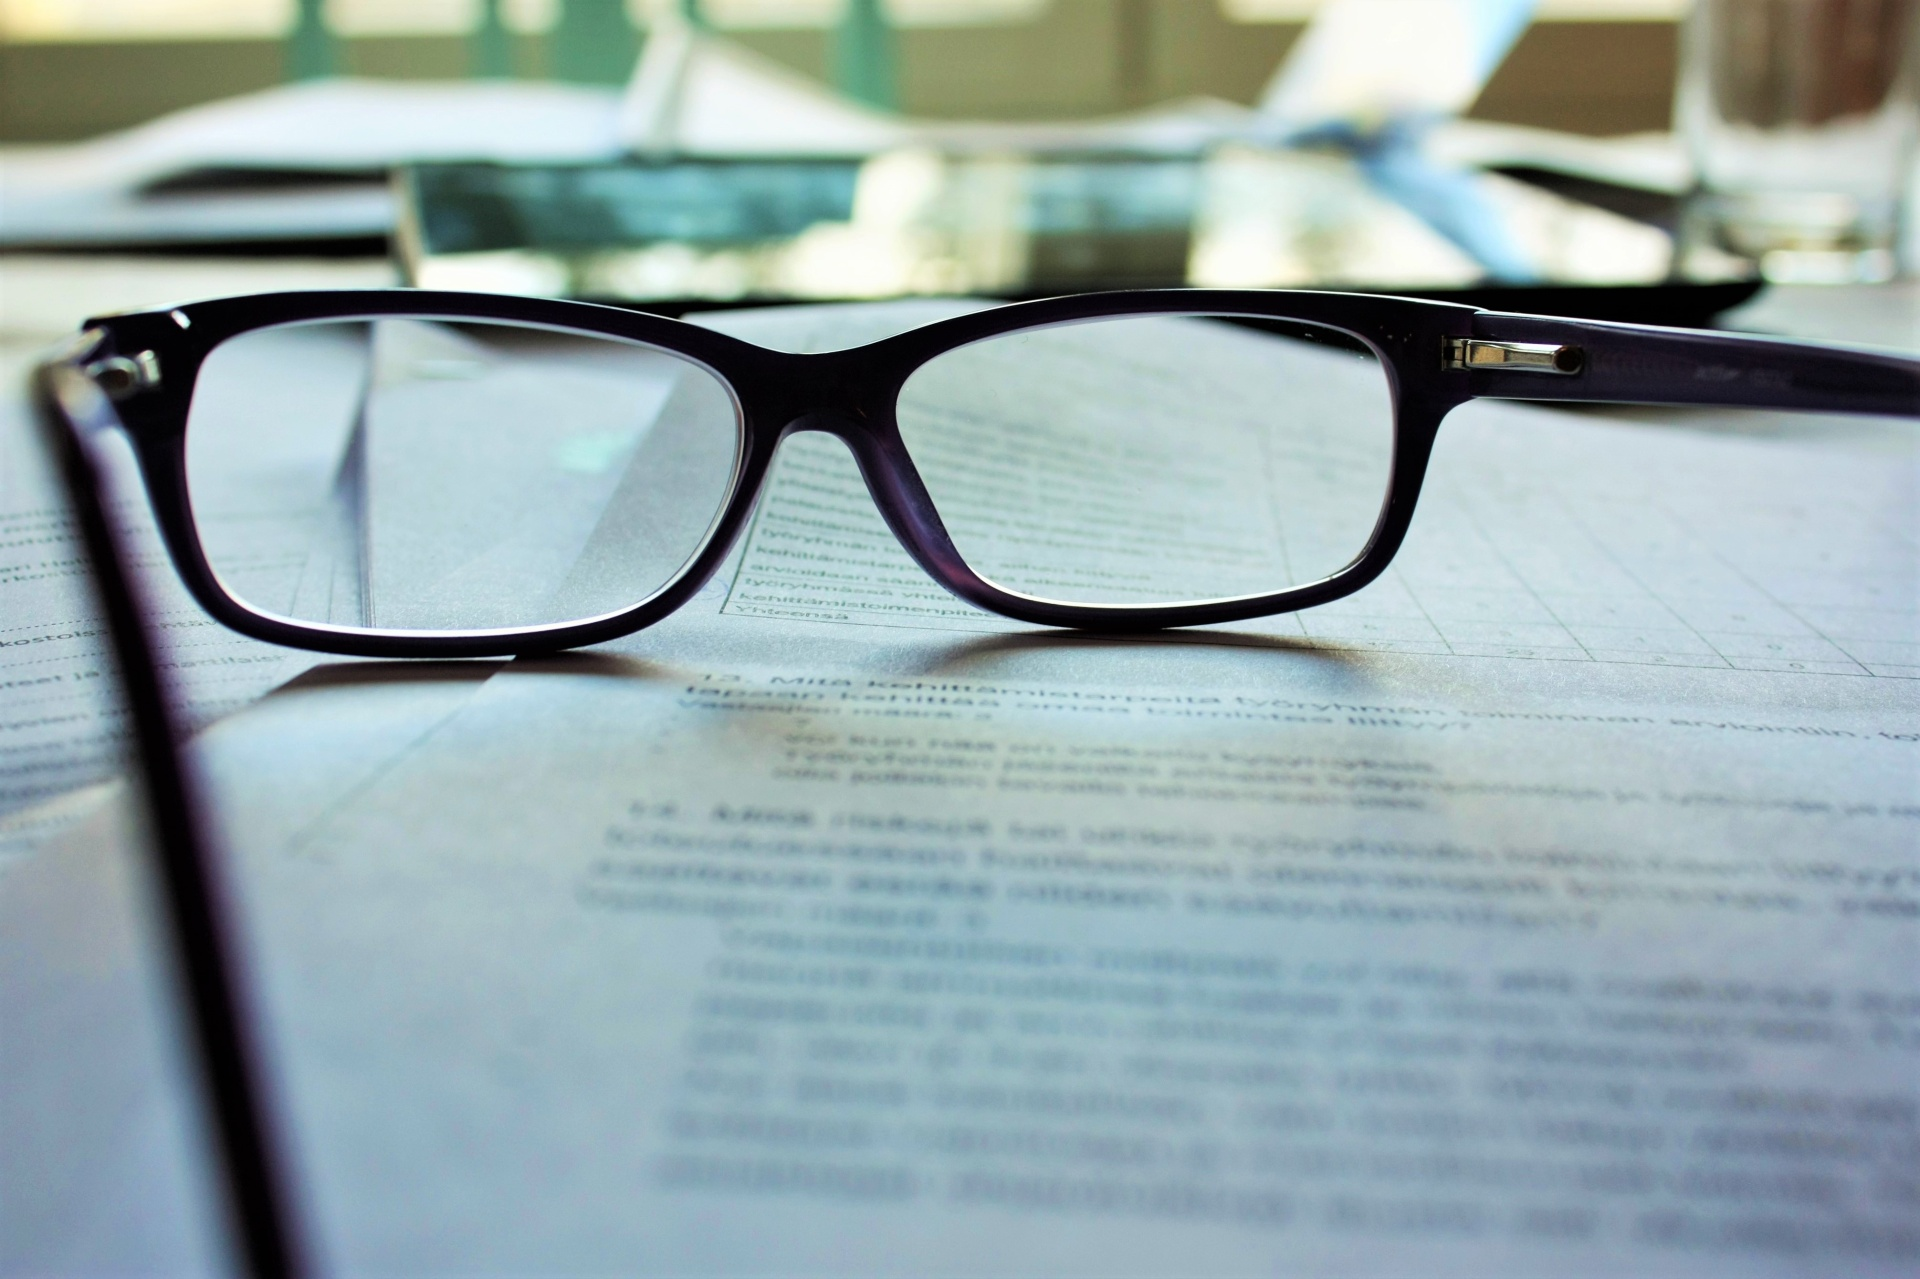 Eyeglasses sitting on paper.